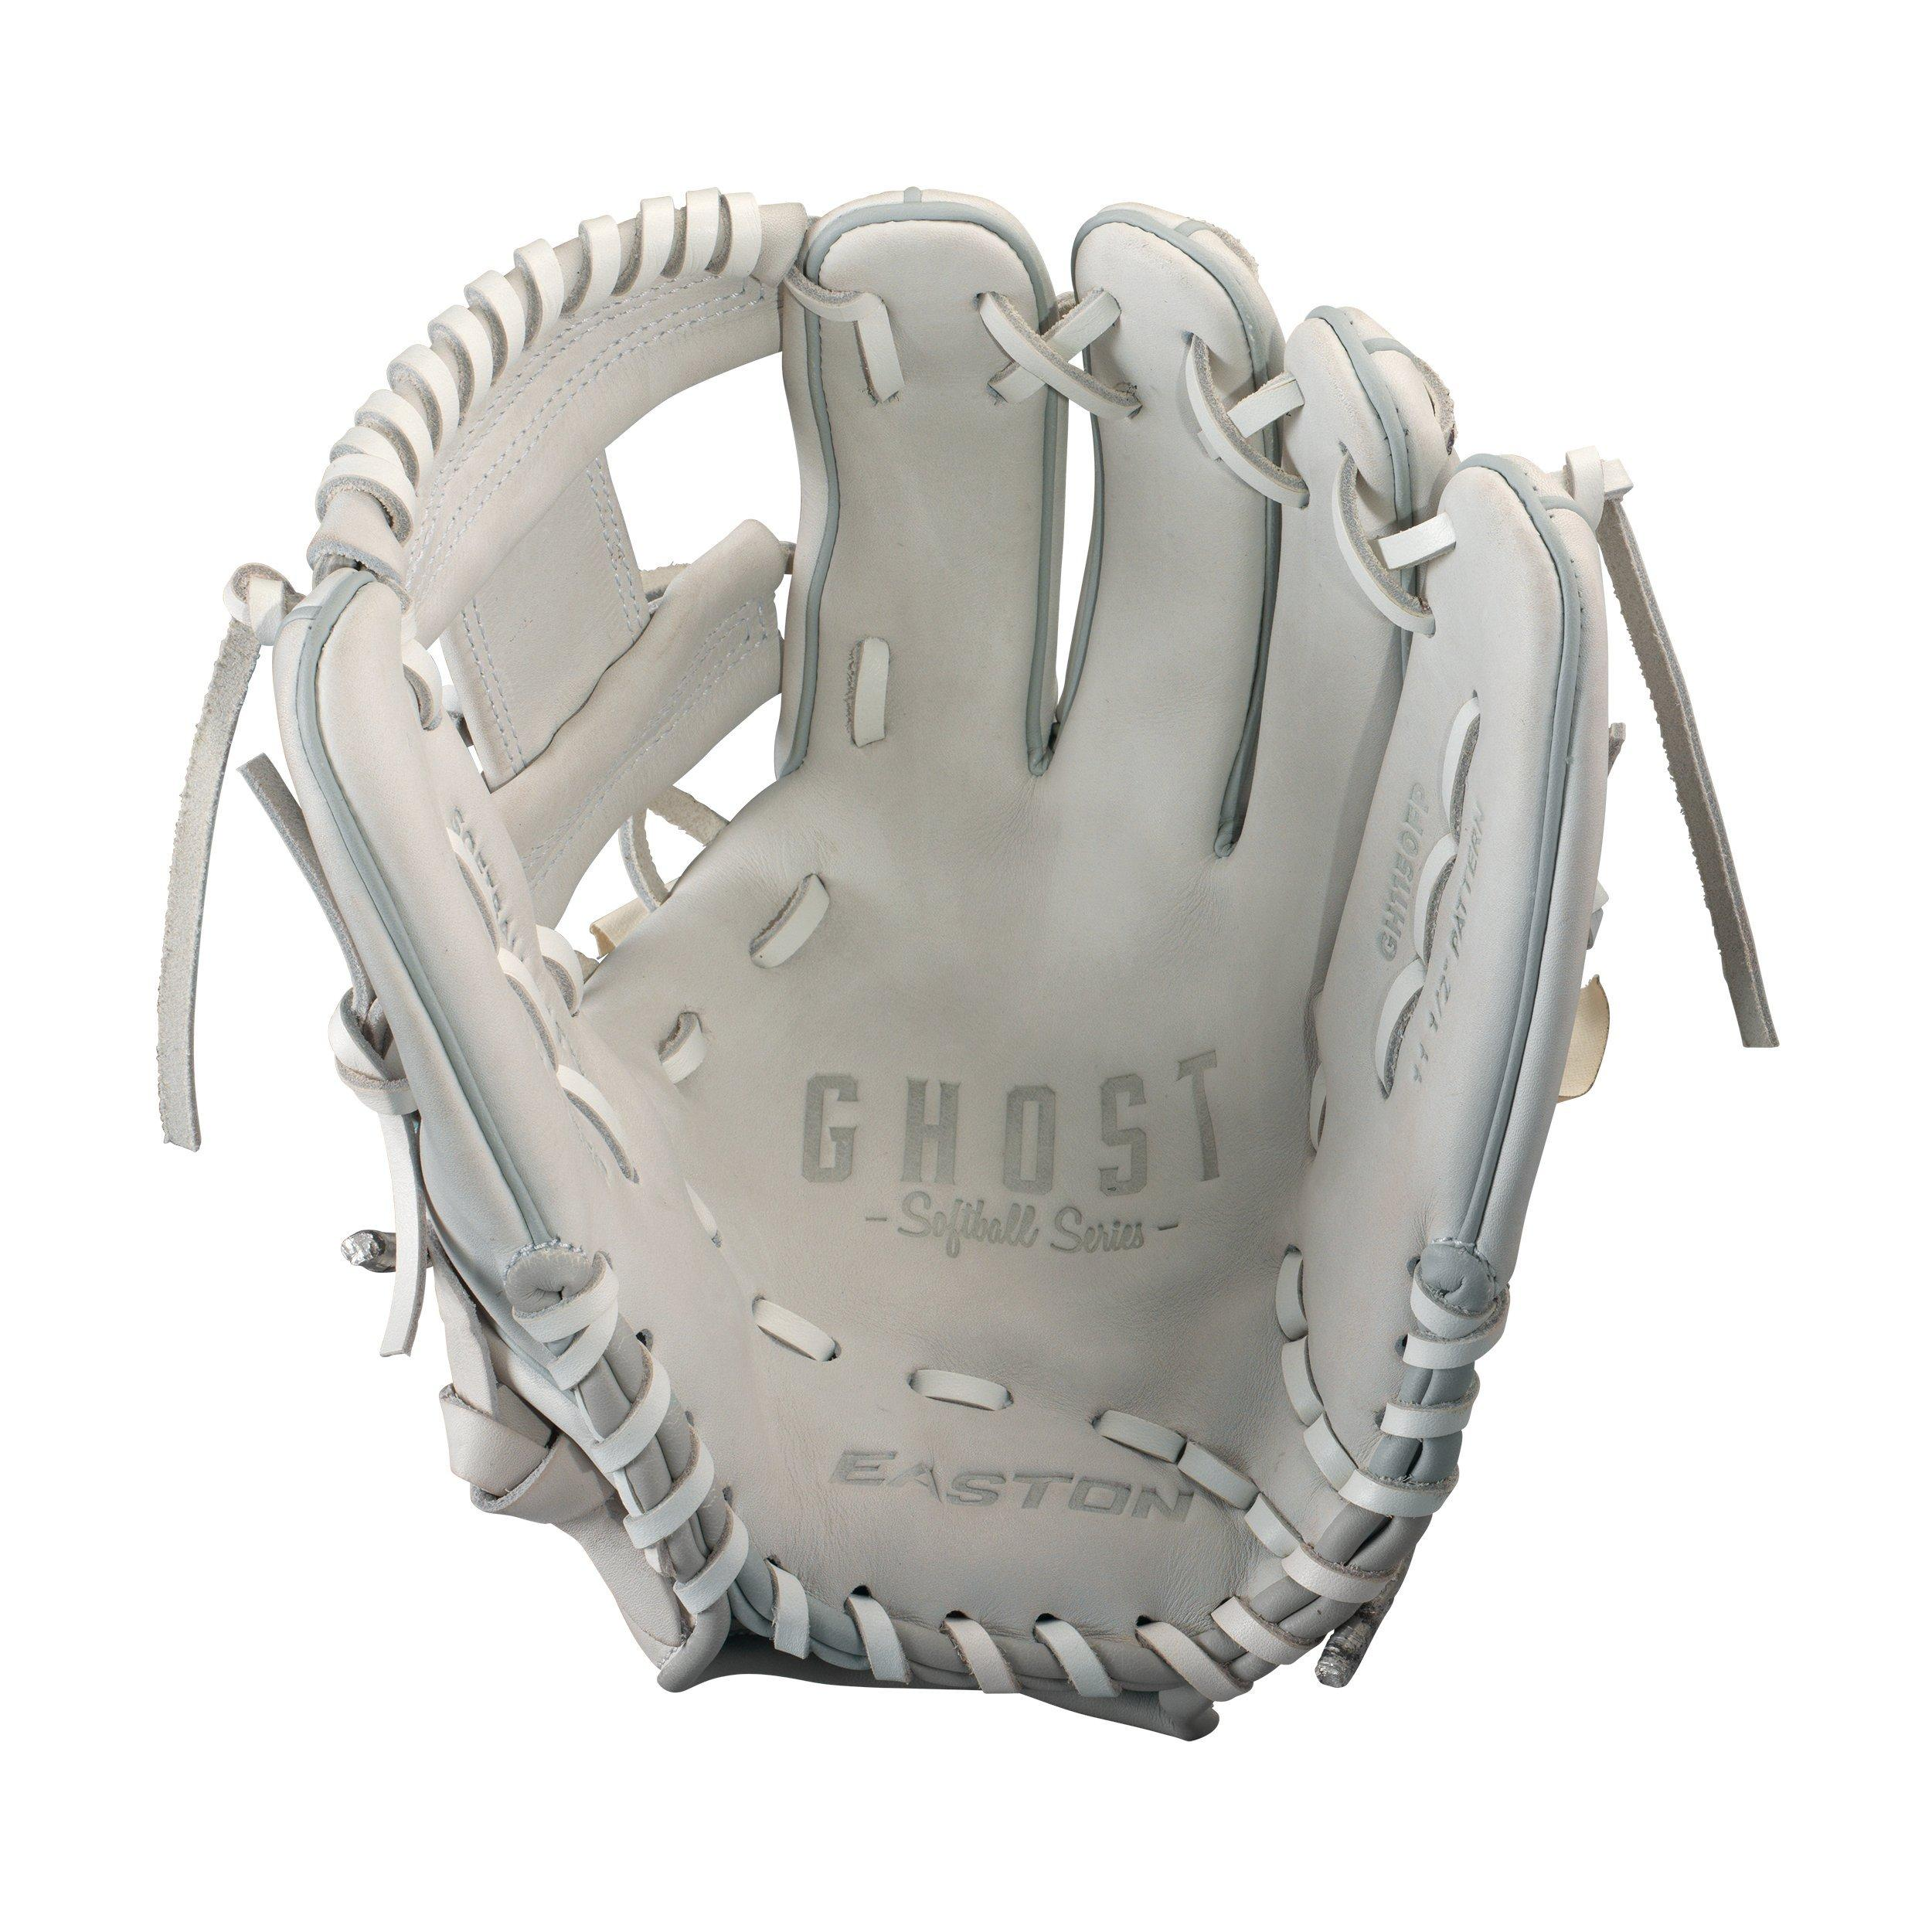 "Easton Ghost Fastpitch 11.50"" Infield Glove - Gray"